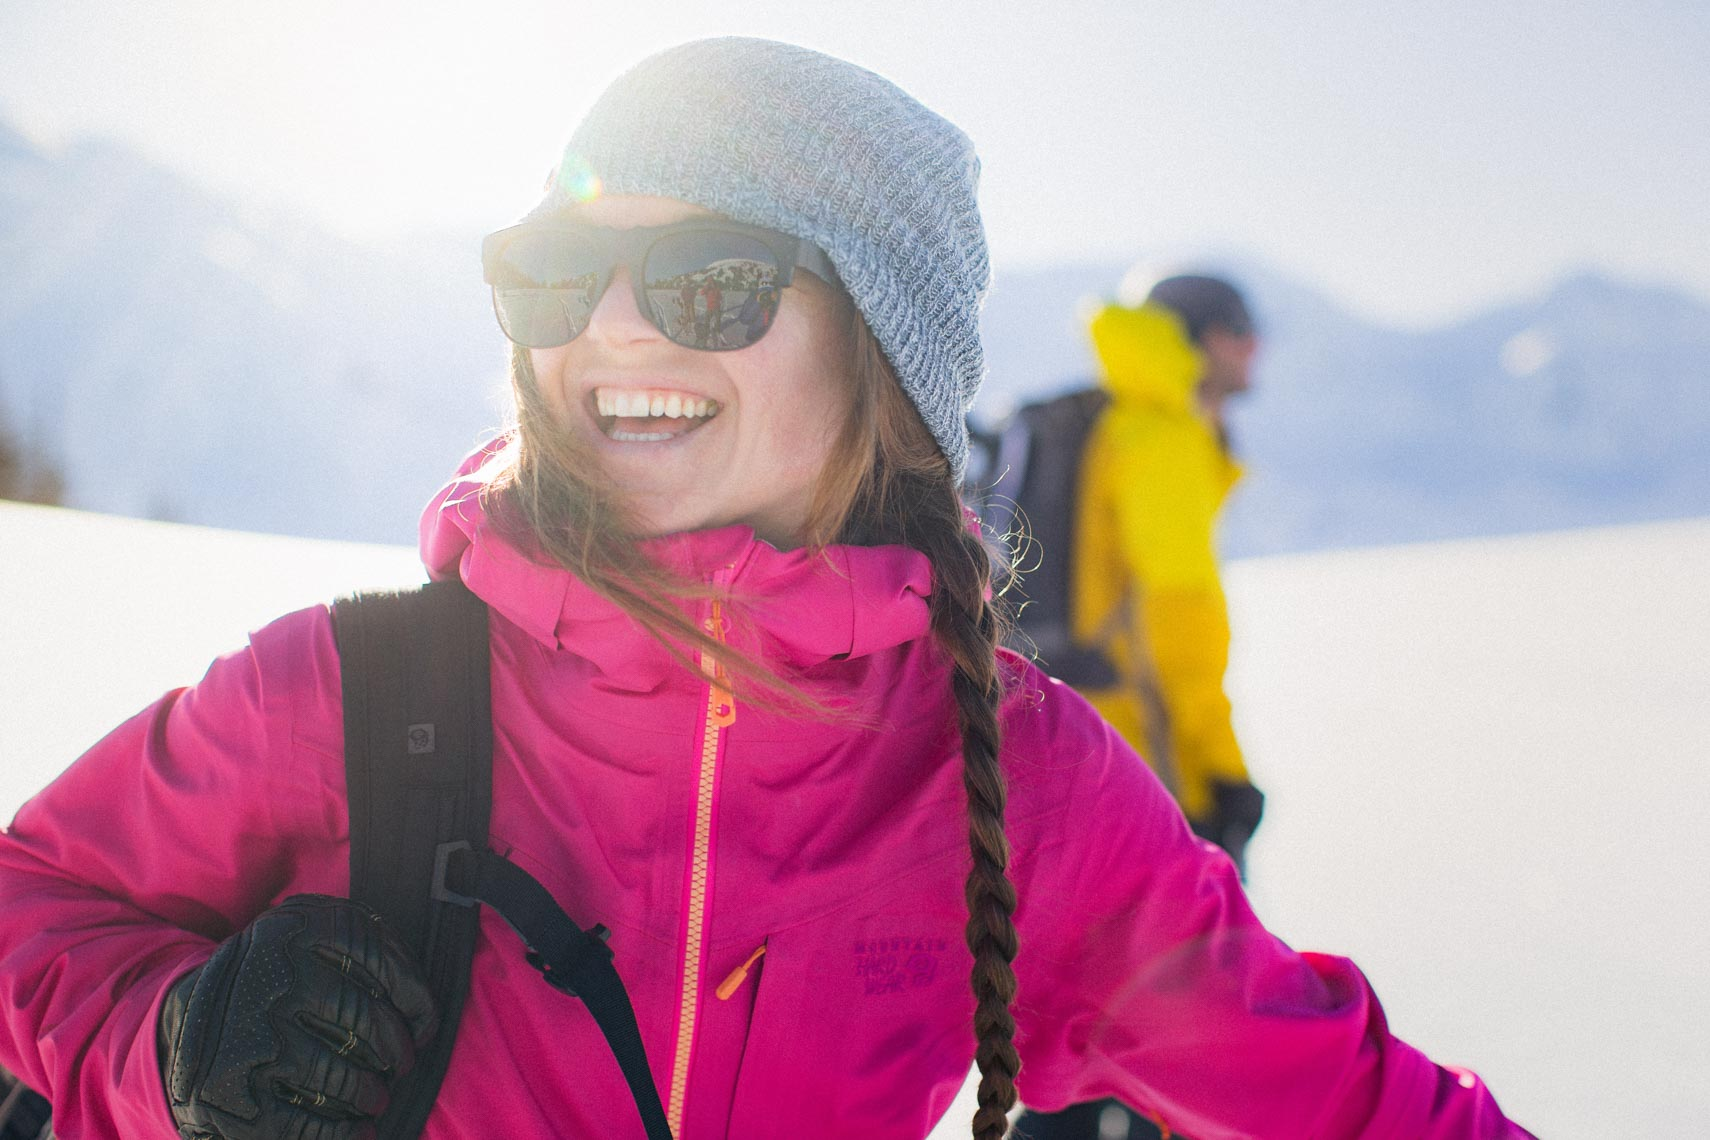 Mountain hardware winter ski jacket photographed in Canada